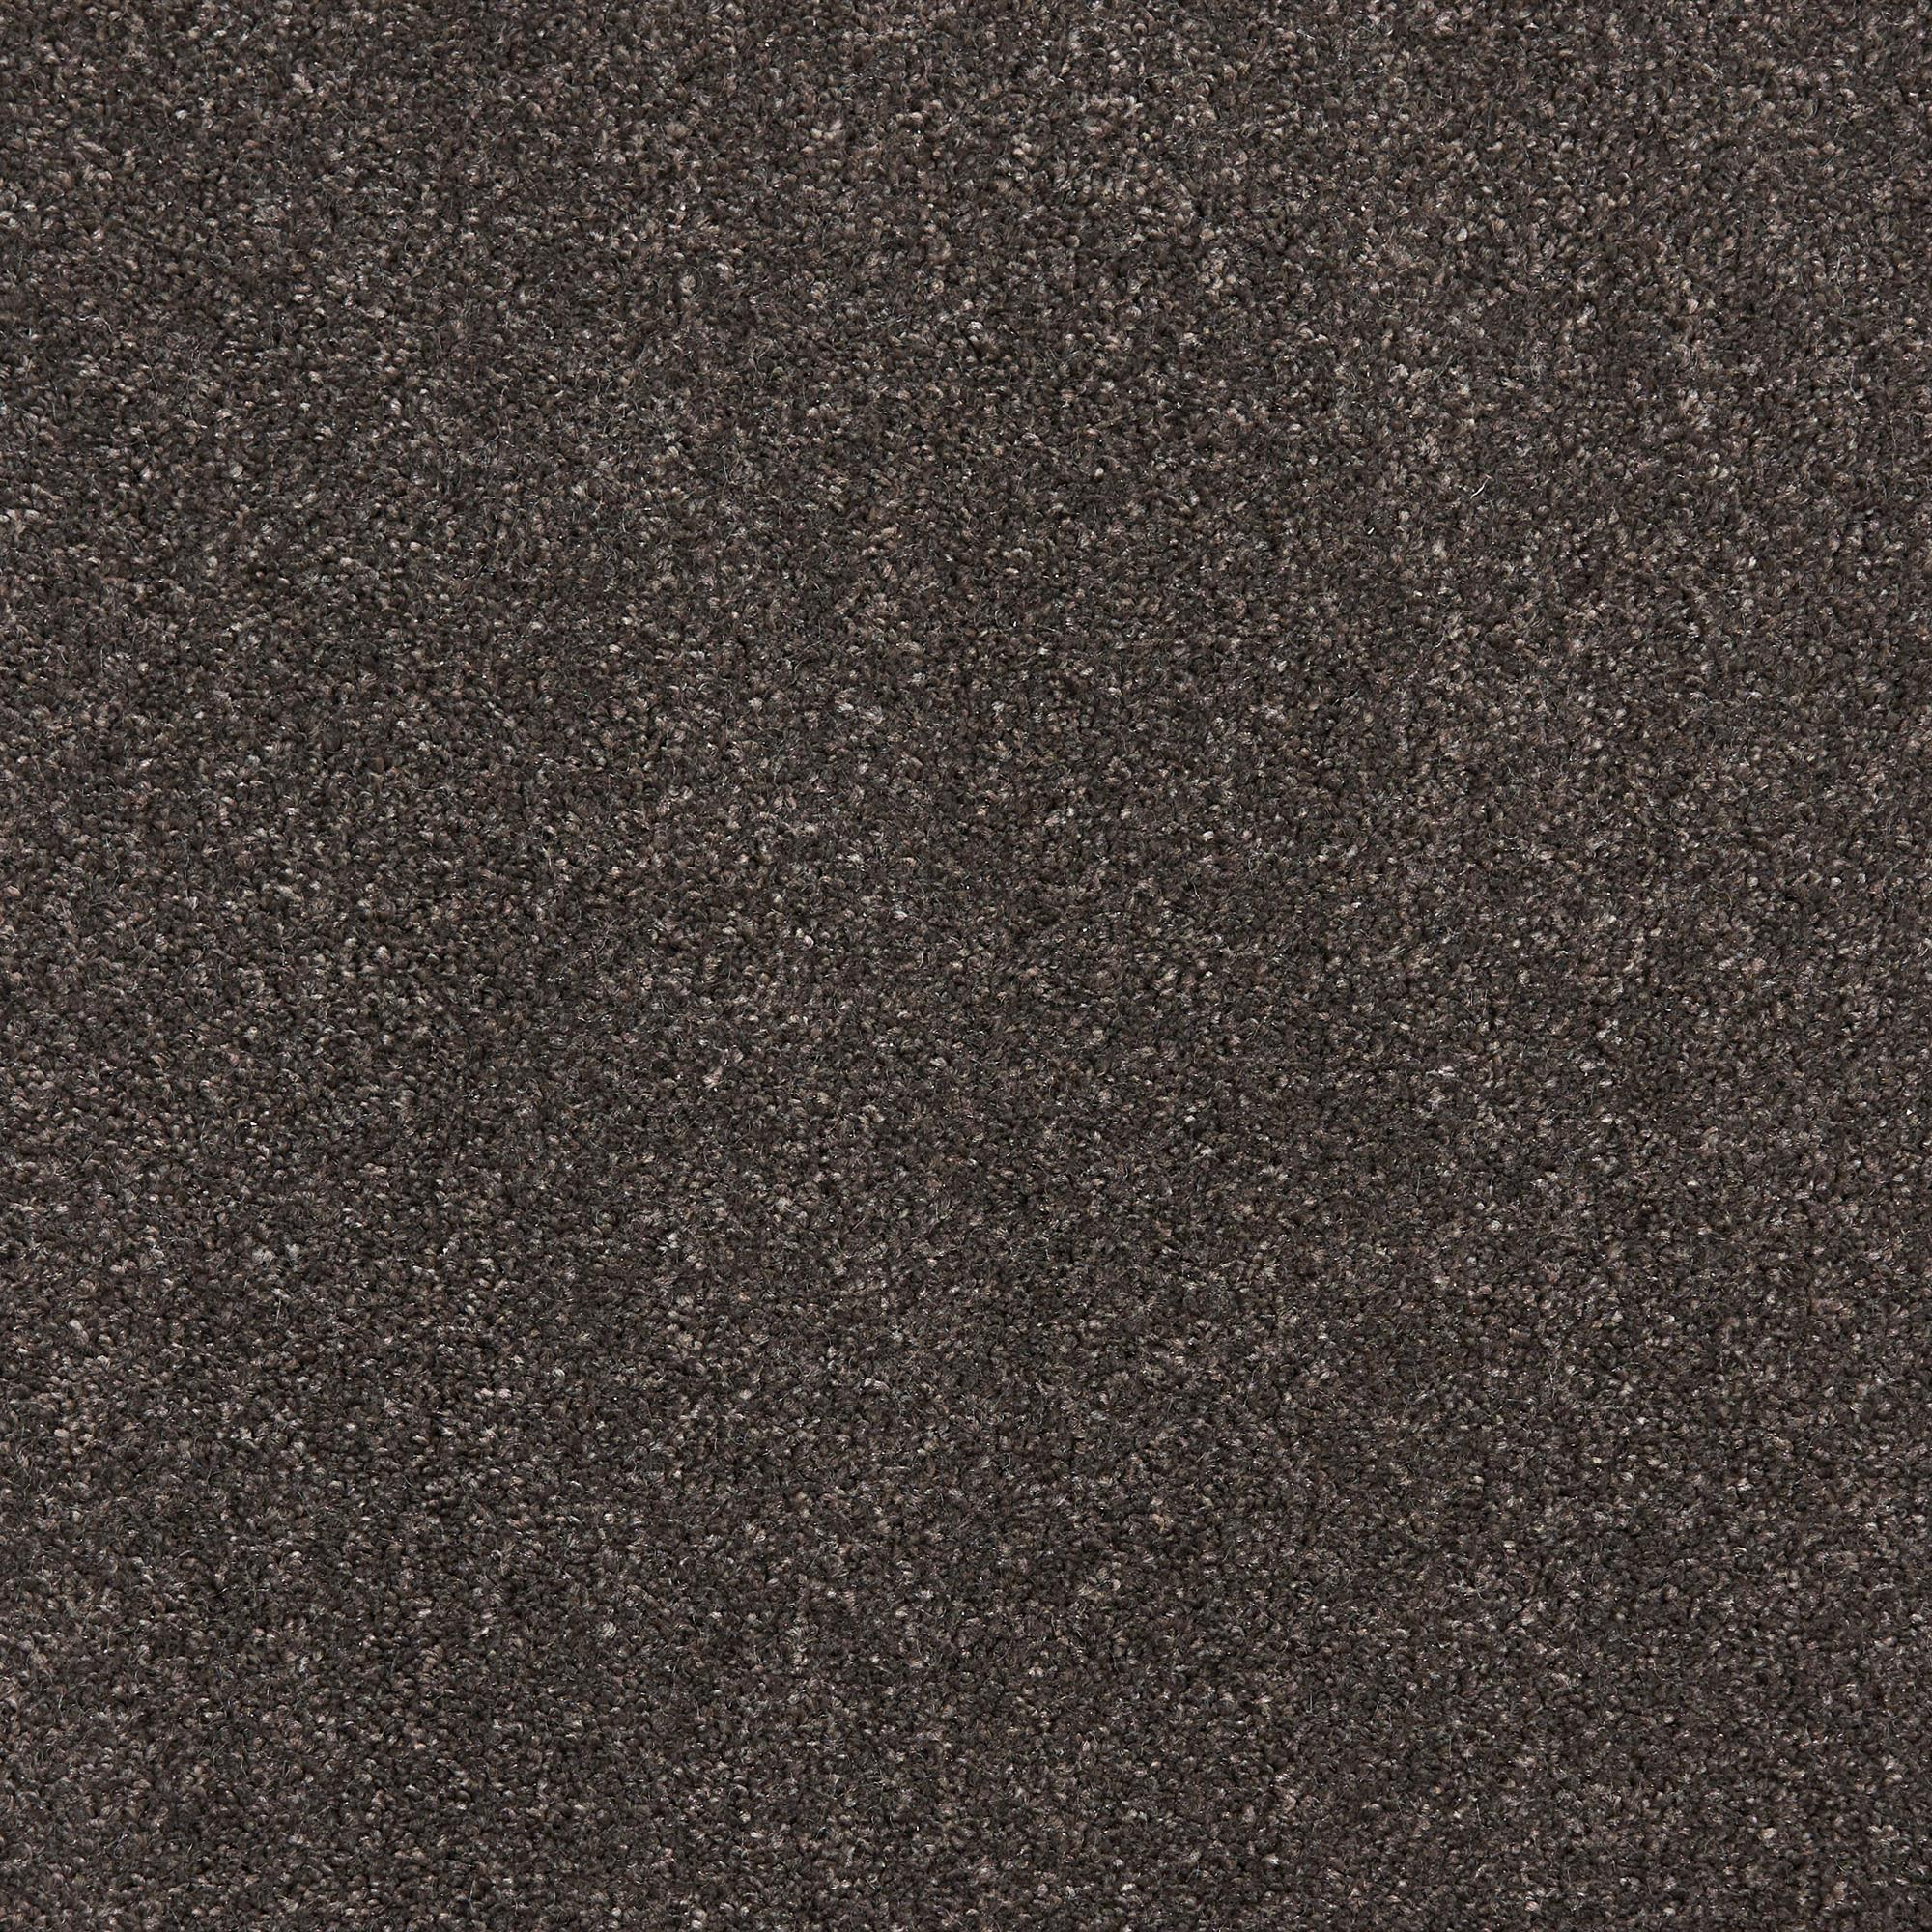 Living Crofthouse Carpet, 06 Black Olive, swatch